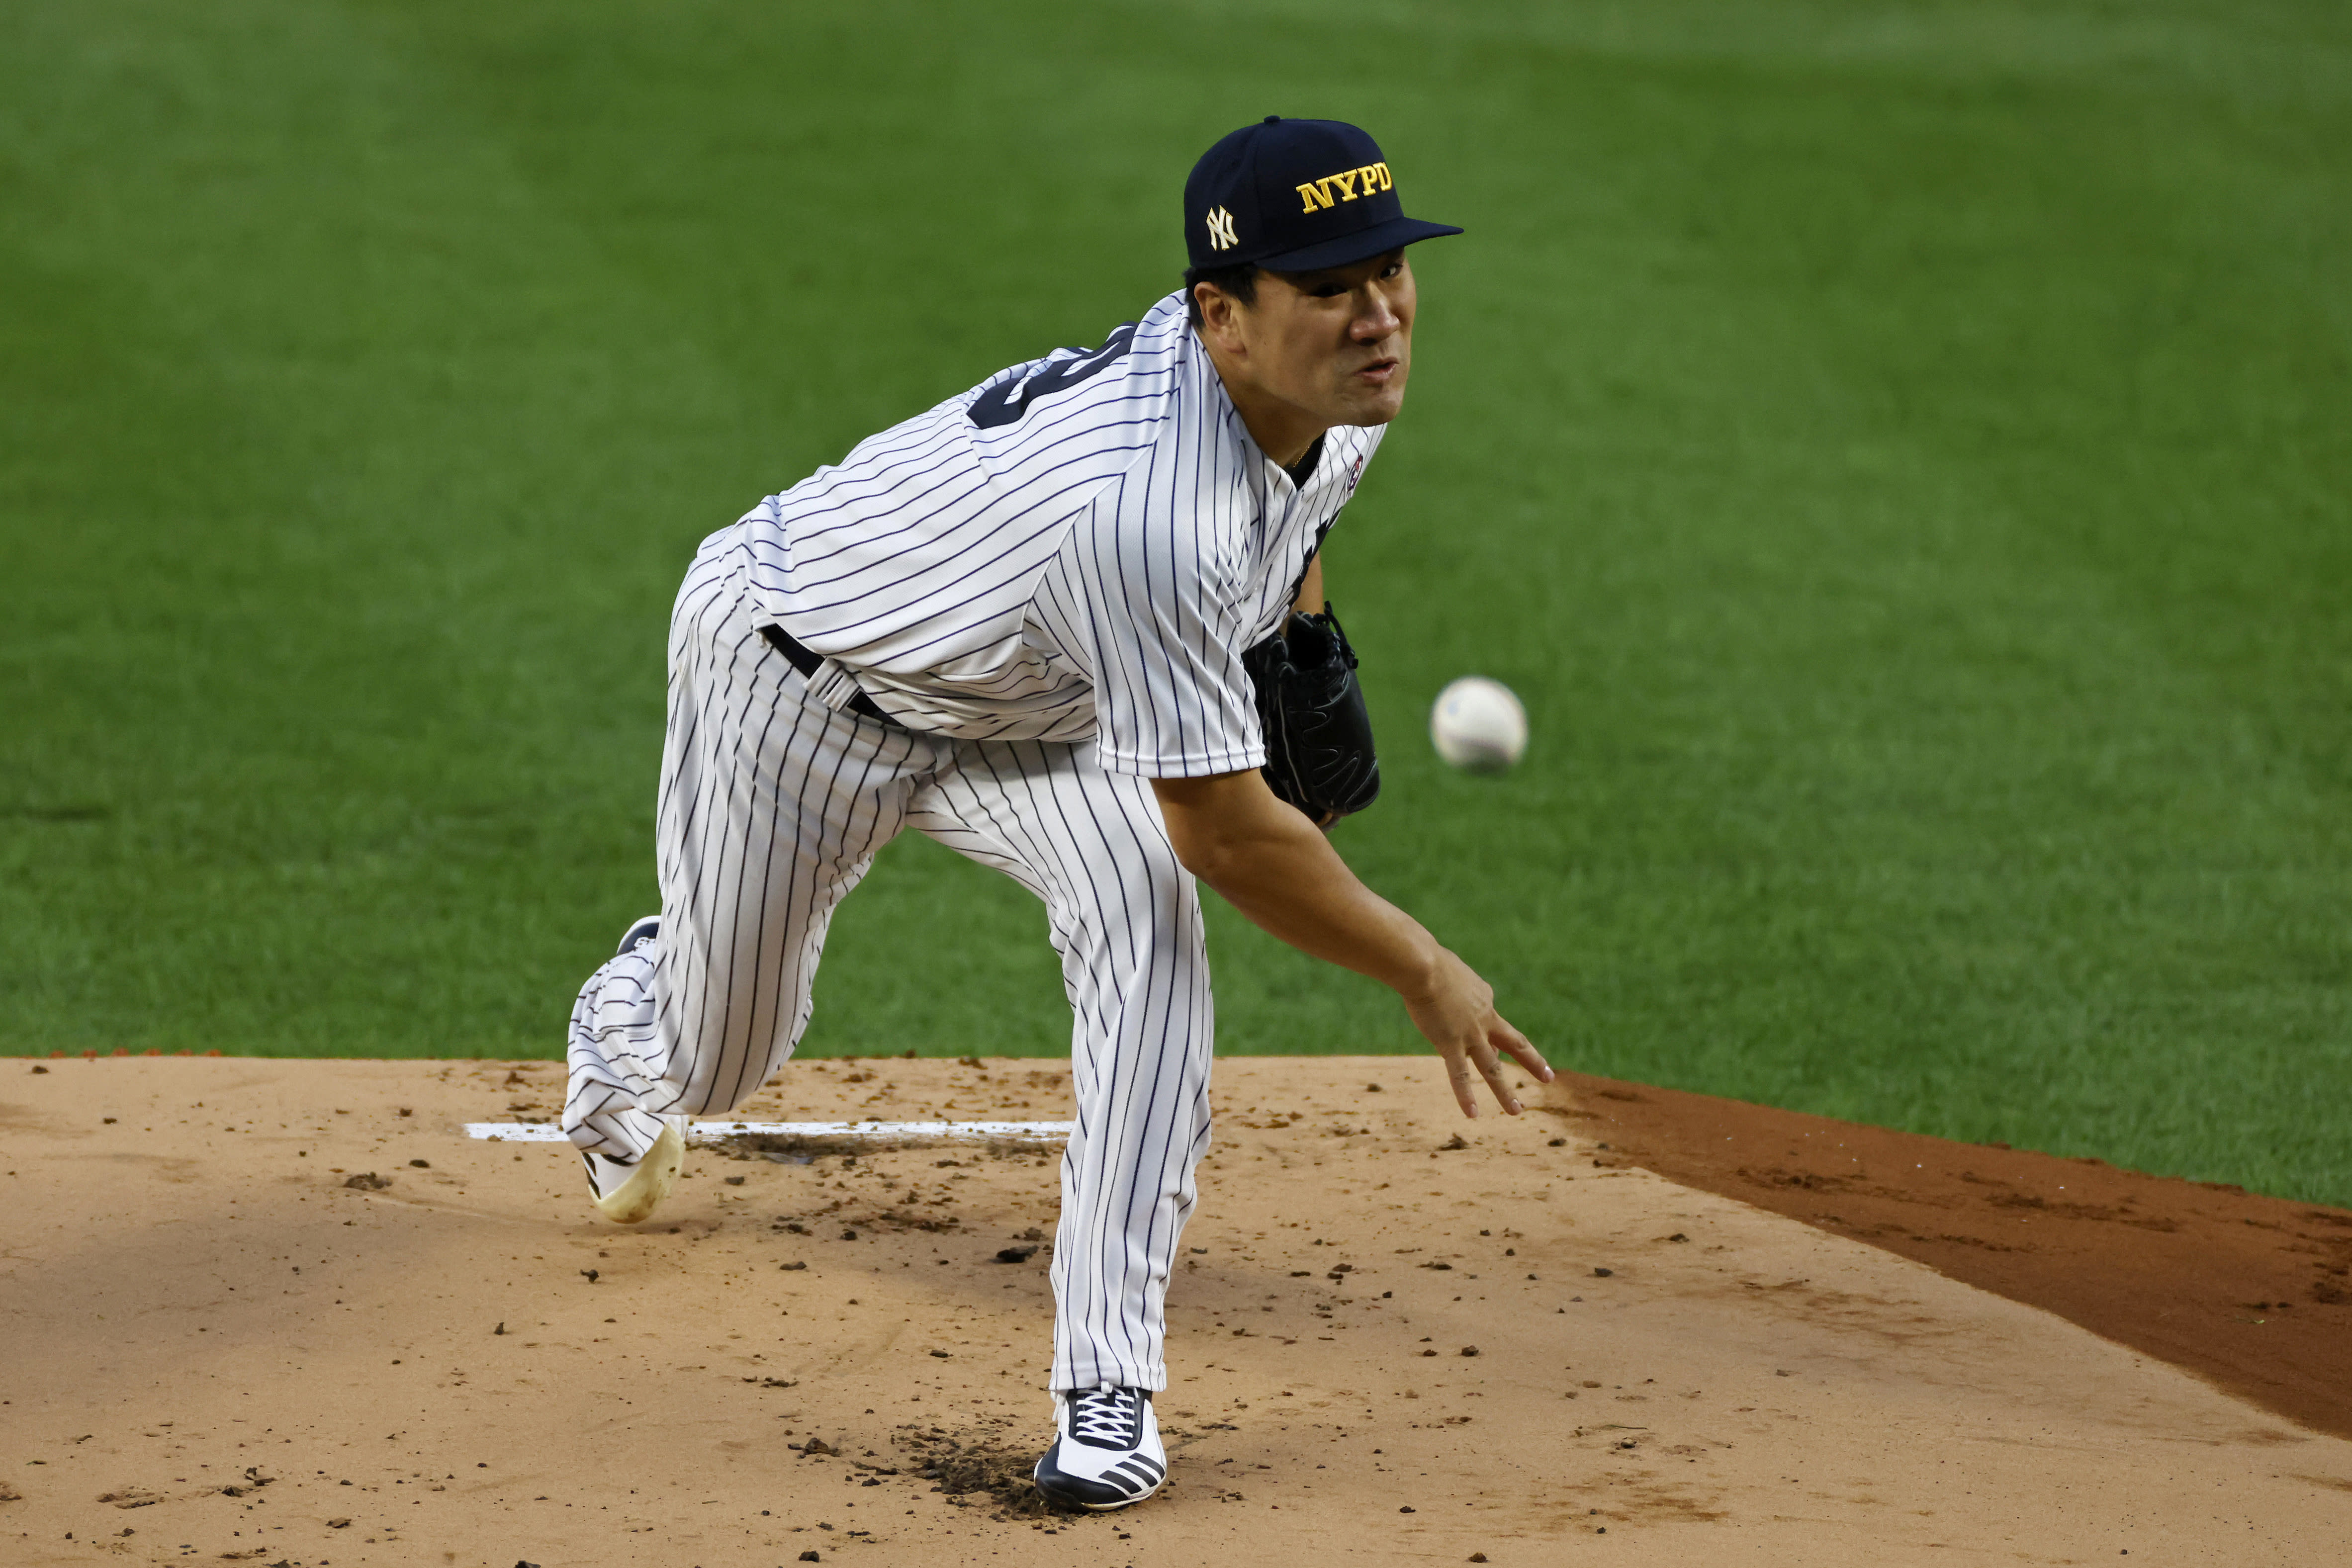 New York Yankees pitcher Masahiro Tanaka throws during the first inning of the second baseball game of the team's doubleheader against the Baltimore Orioles, Friday, Sept. 11, 2020, in New York. (AP Photo/Adam Hunger)